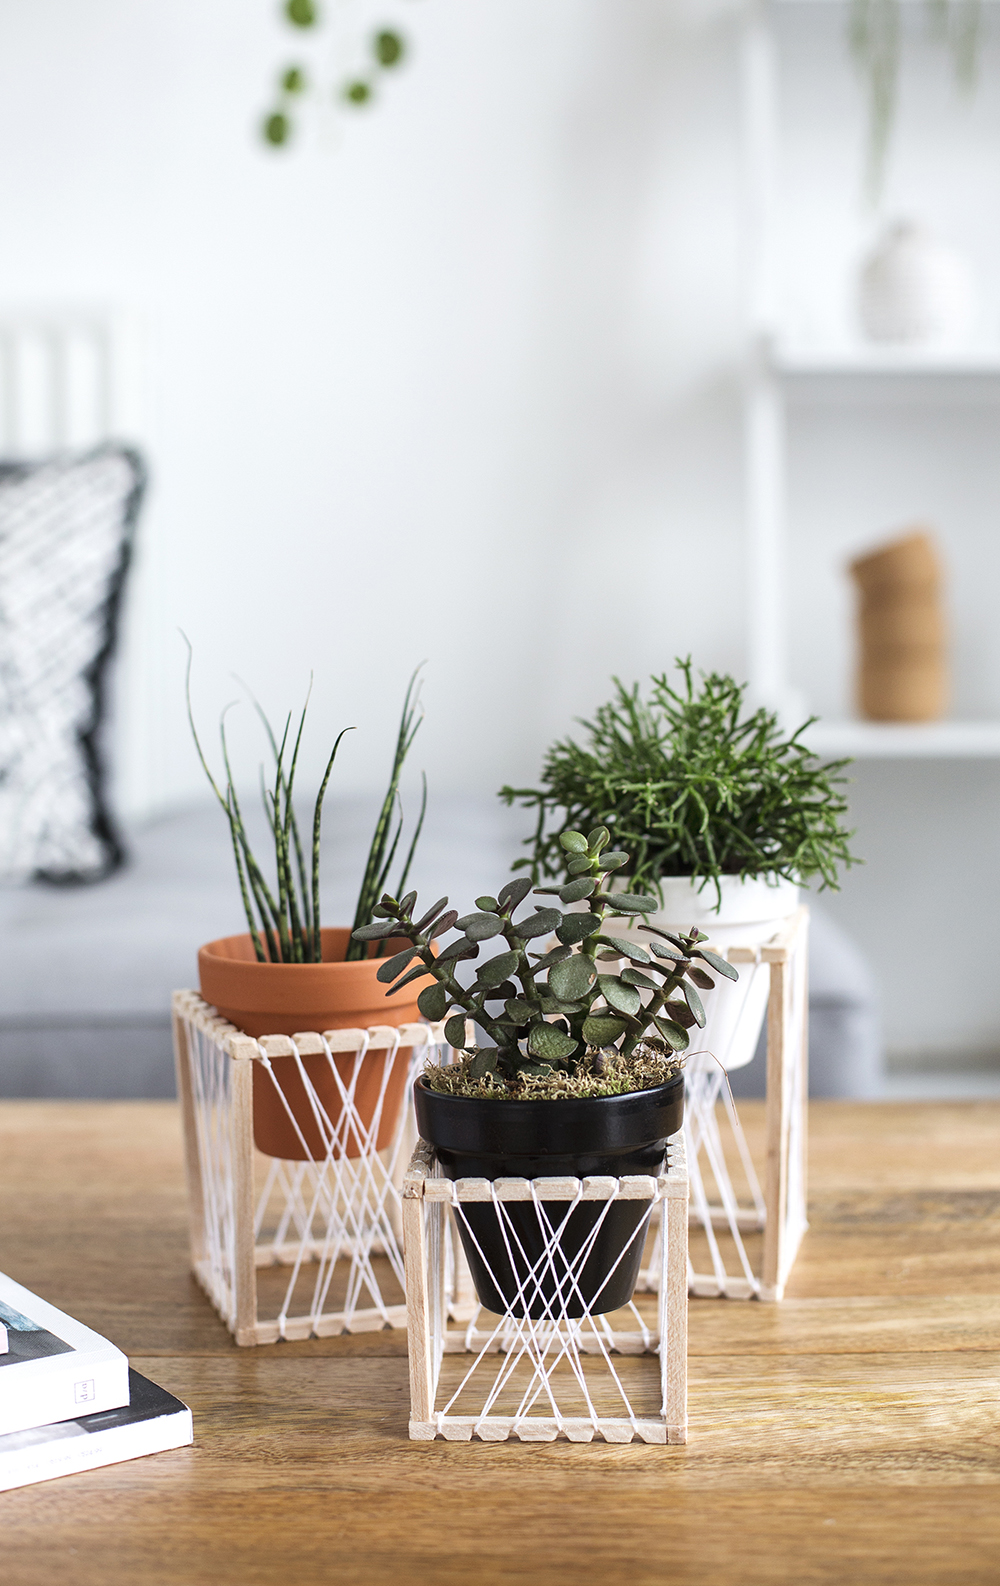 DIY Woven Plant Stand by The Lovely Drawer